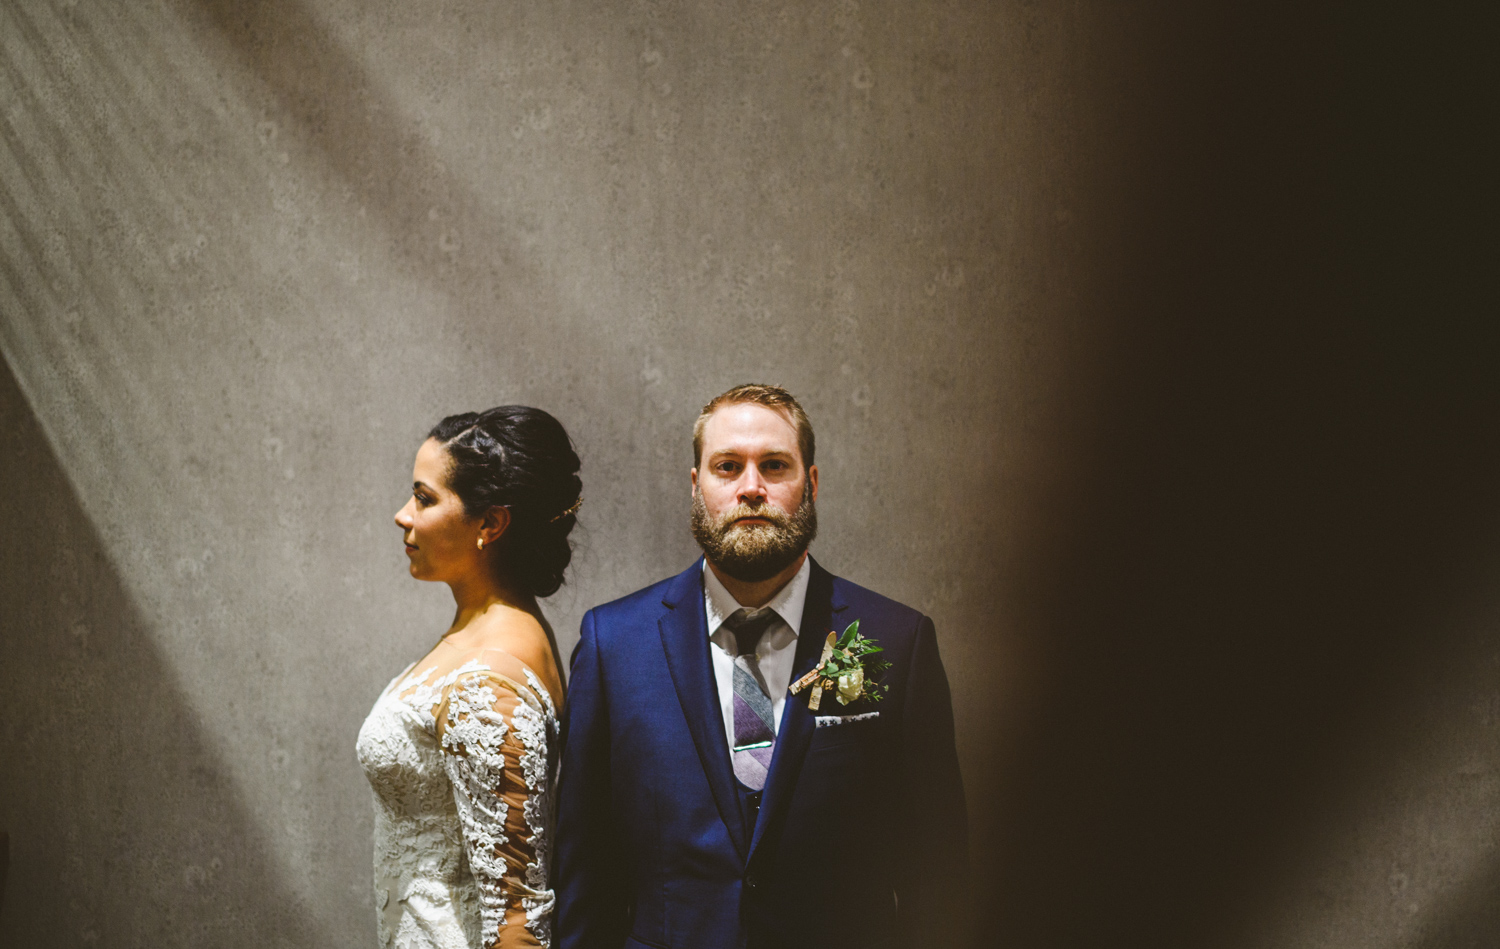 048 - creative portrait of bride and groom with groom looking at the camera and light beaming down from above night portrait.jpg